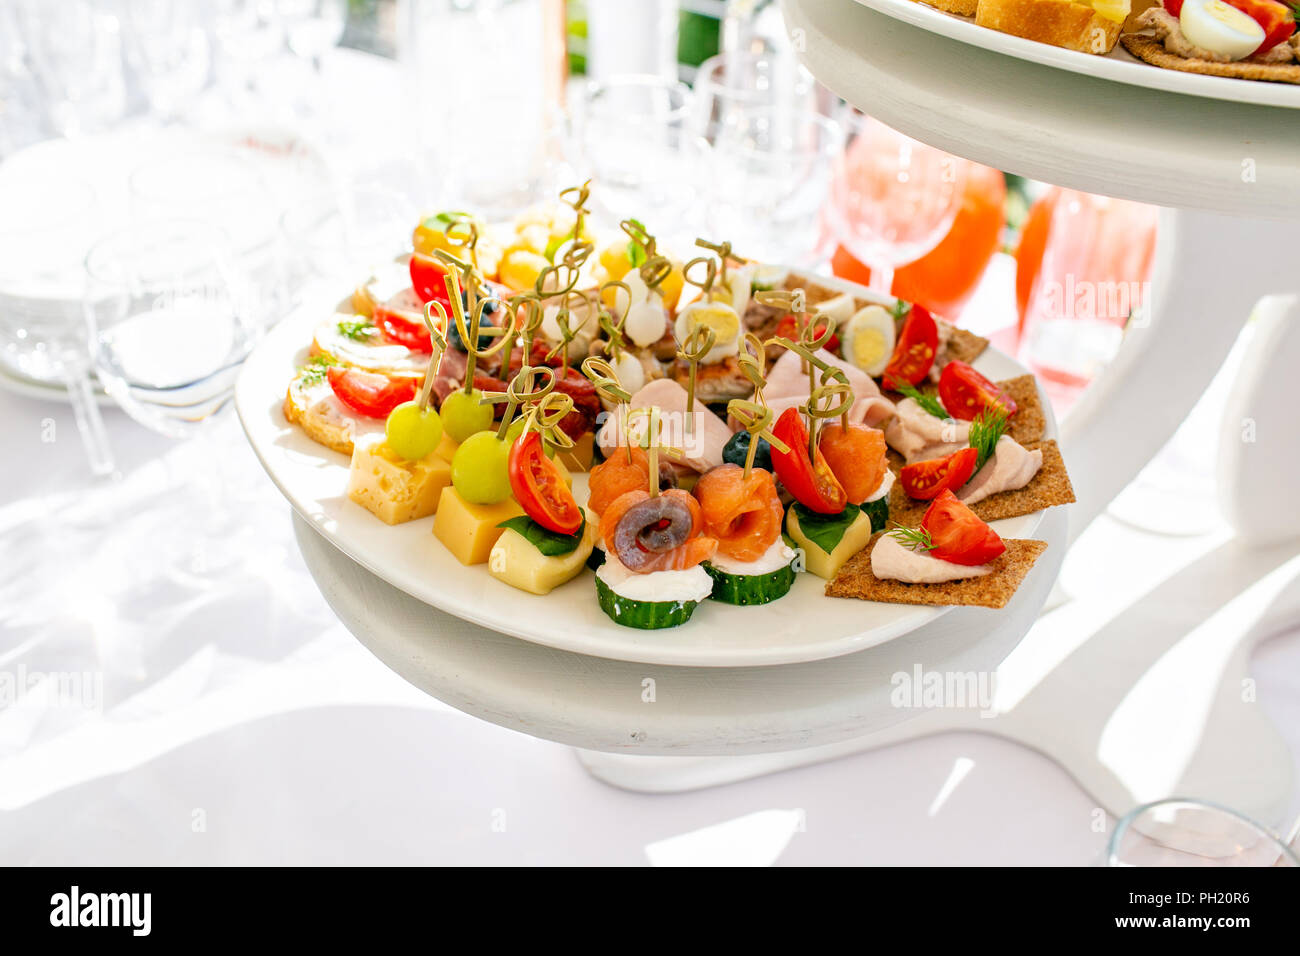 solemn banquet. Lot of glasses champagne or wine on the table in restaurant. buffet table with lots of delicious snacks. canapes, bruschetta, and little desserts on wooden plate board - Stock Image